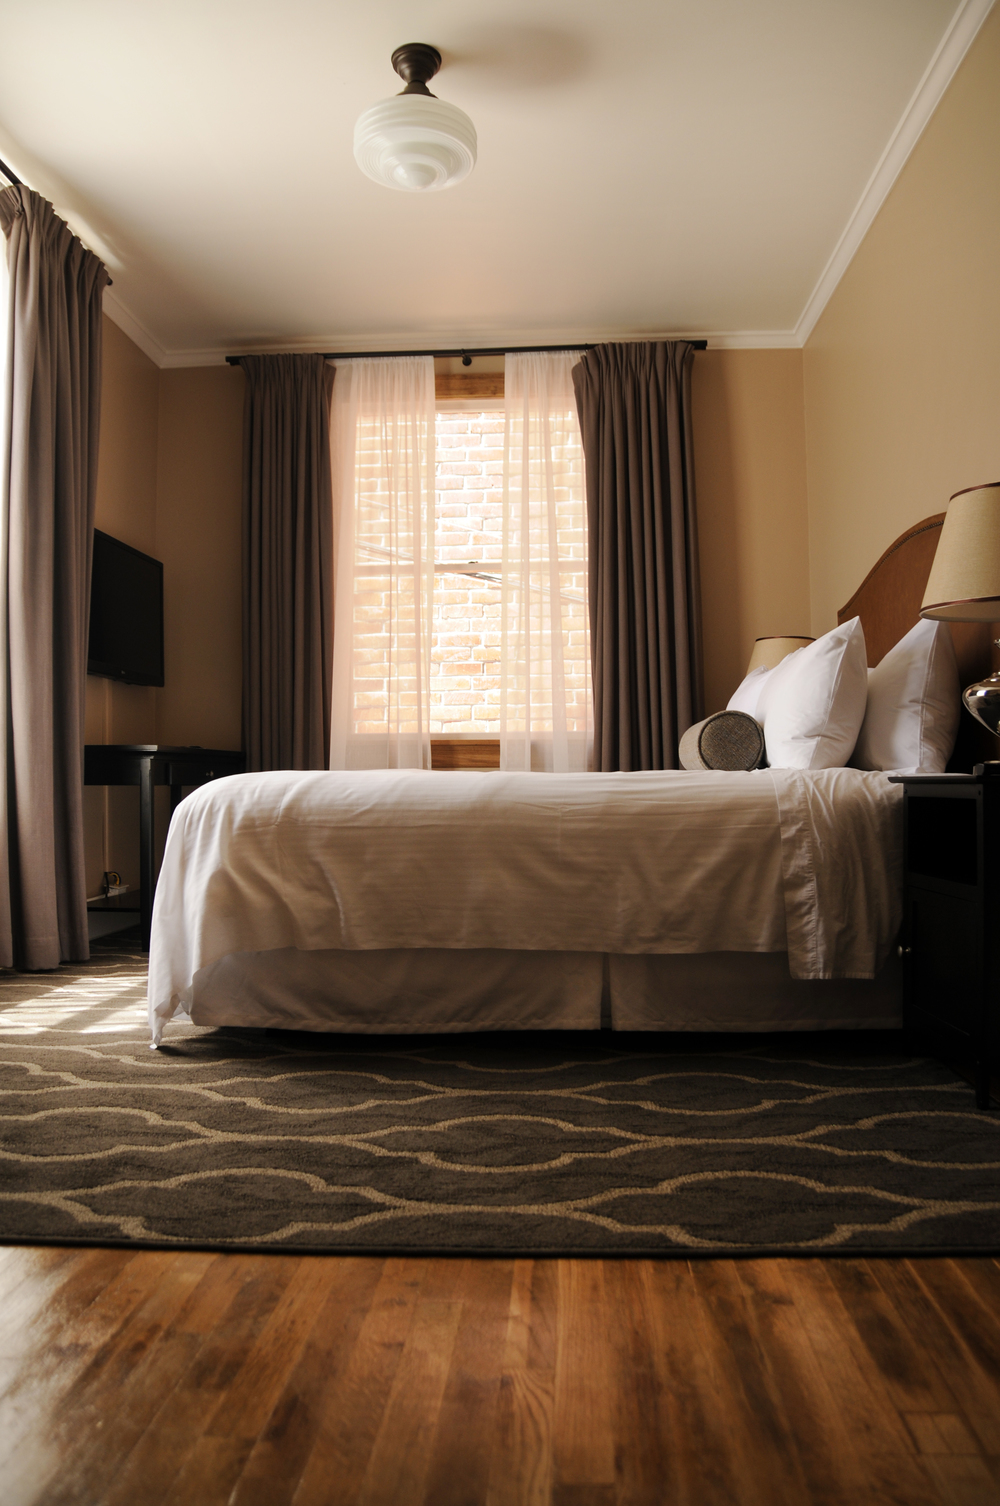 The charming rooms feature hardwood flooring, minimalistic style and the comfiest bed you could ask for